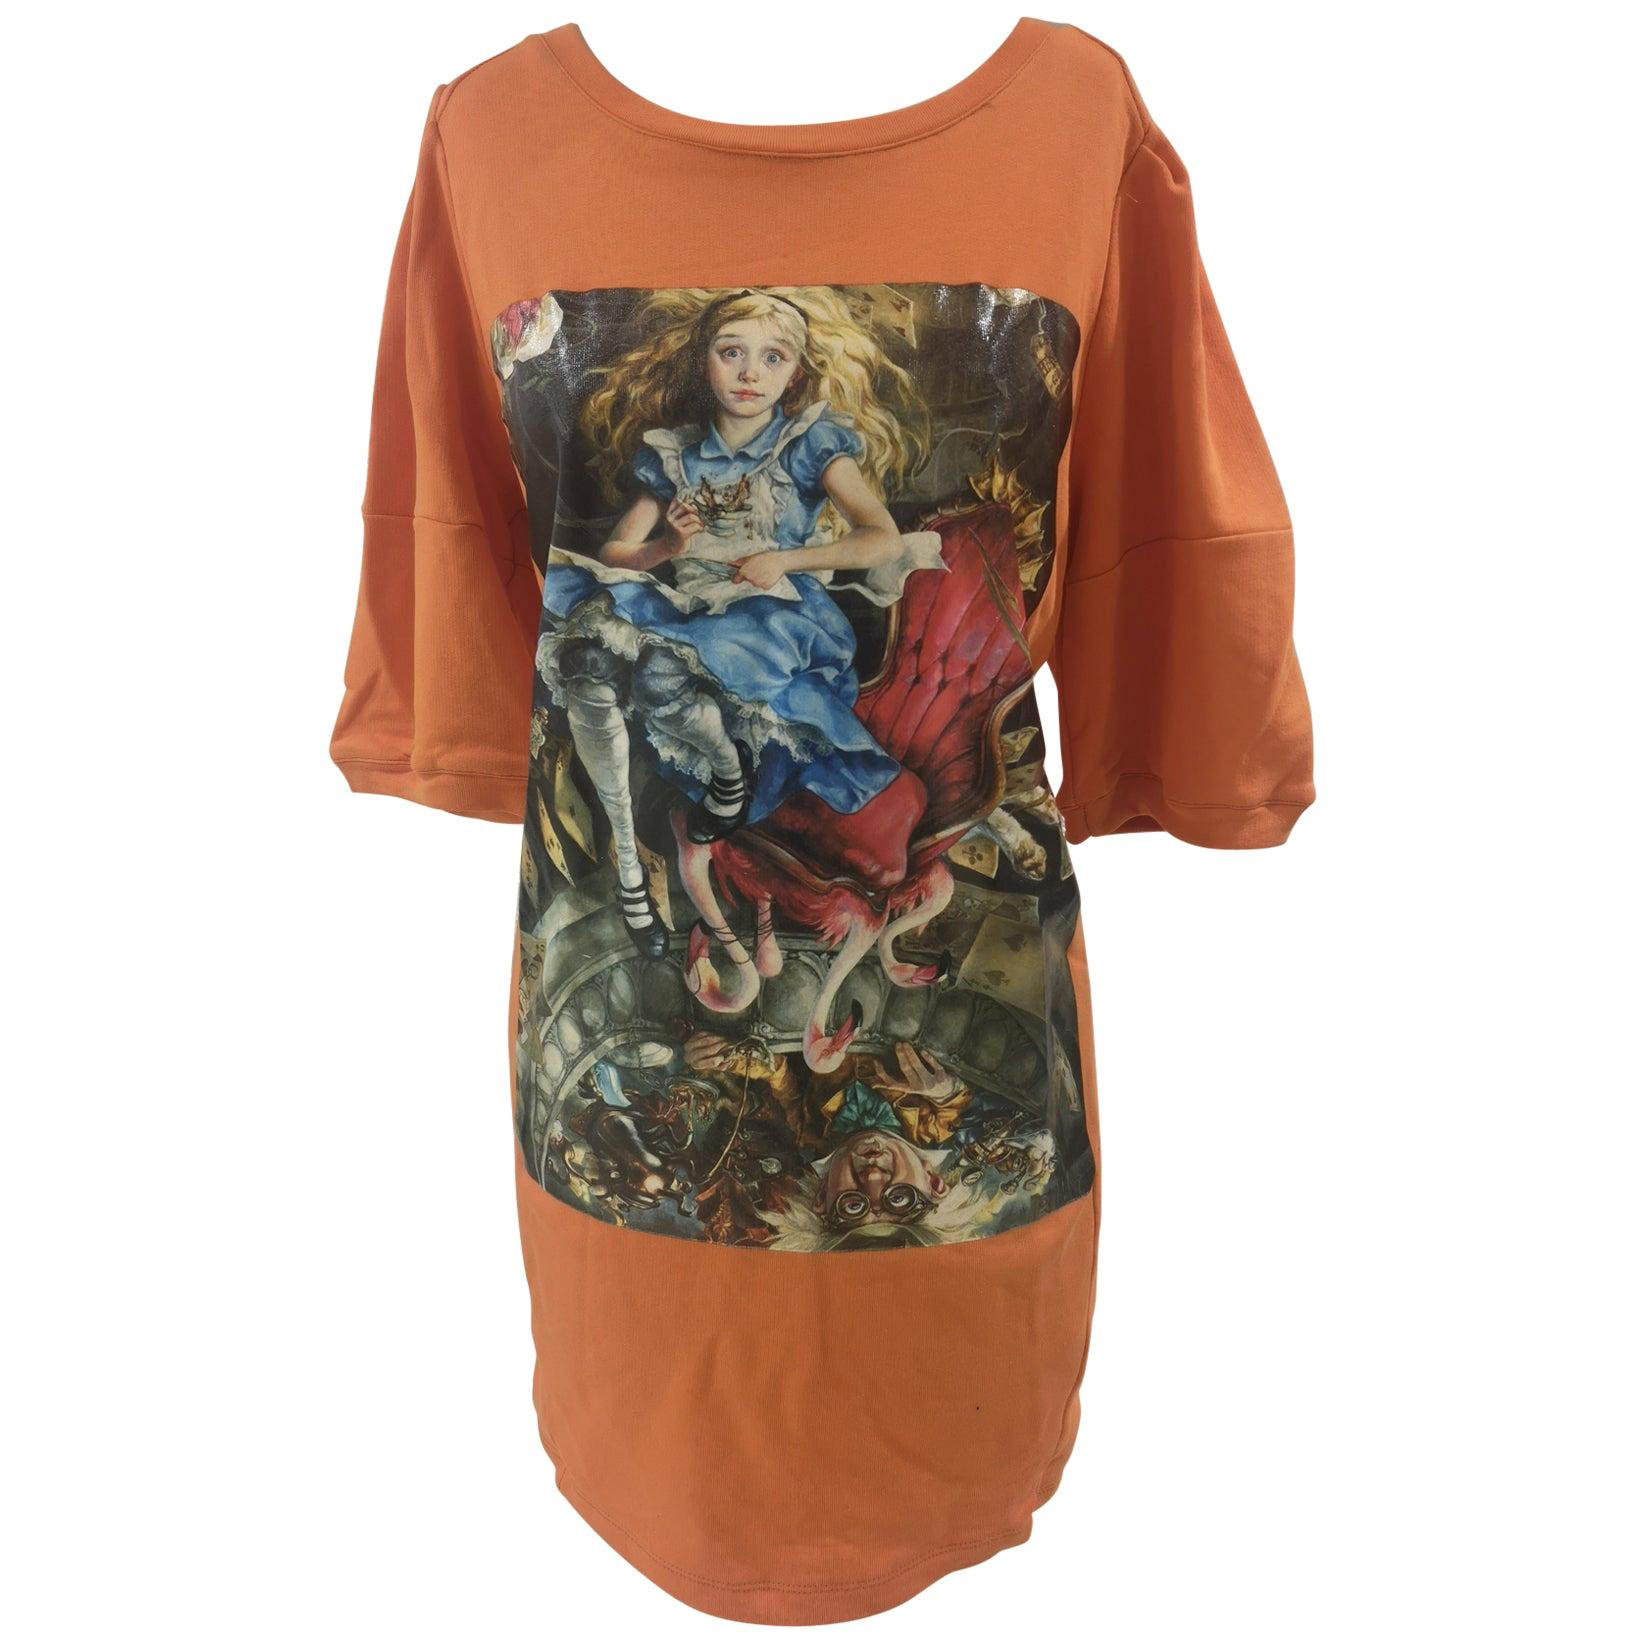 Gli Psicopatici orange Alice in Wonderland dress / sweater